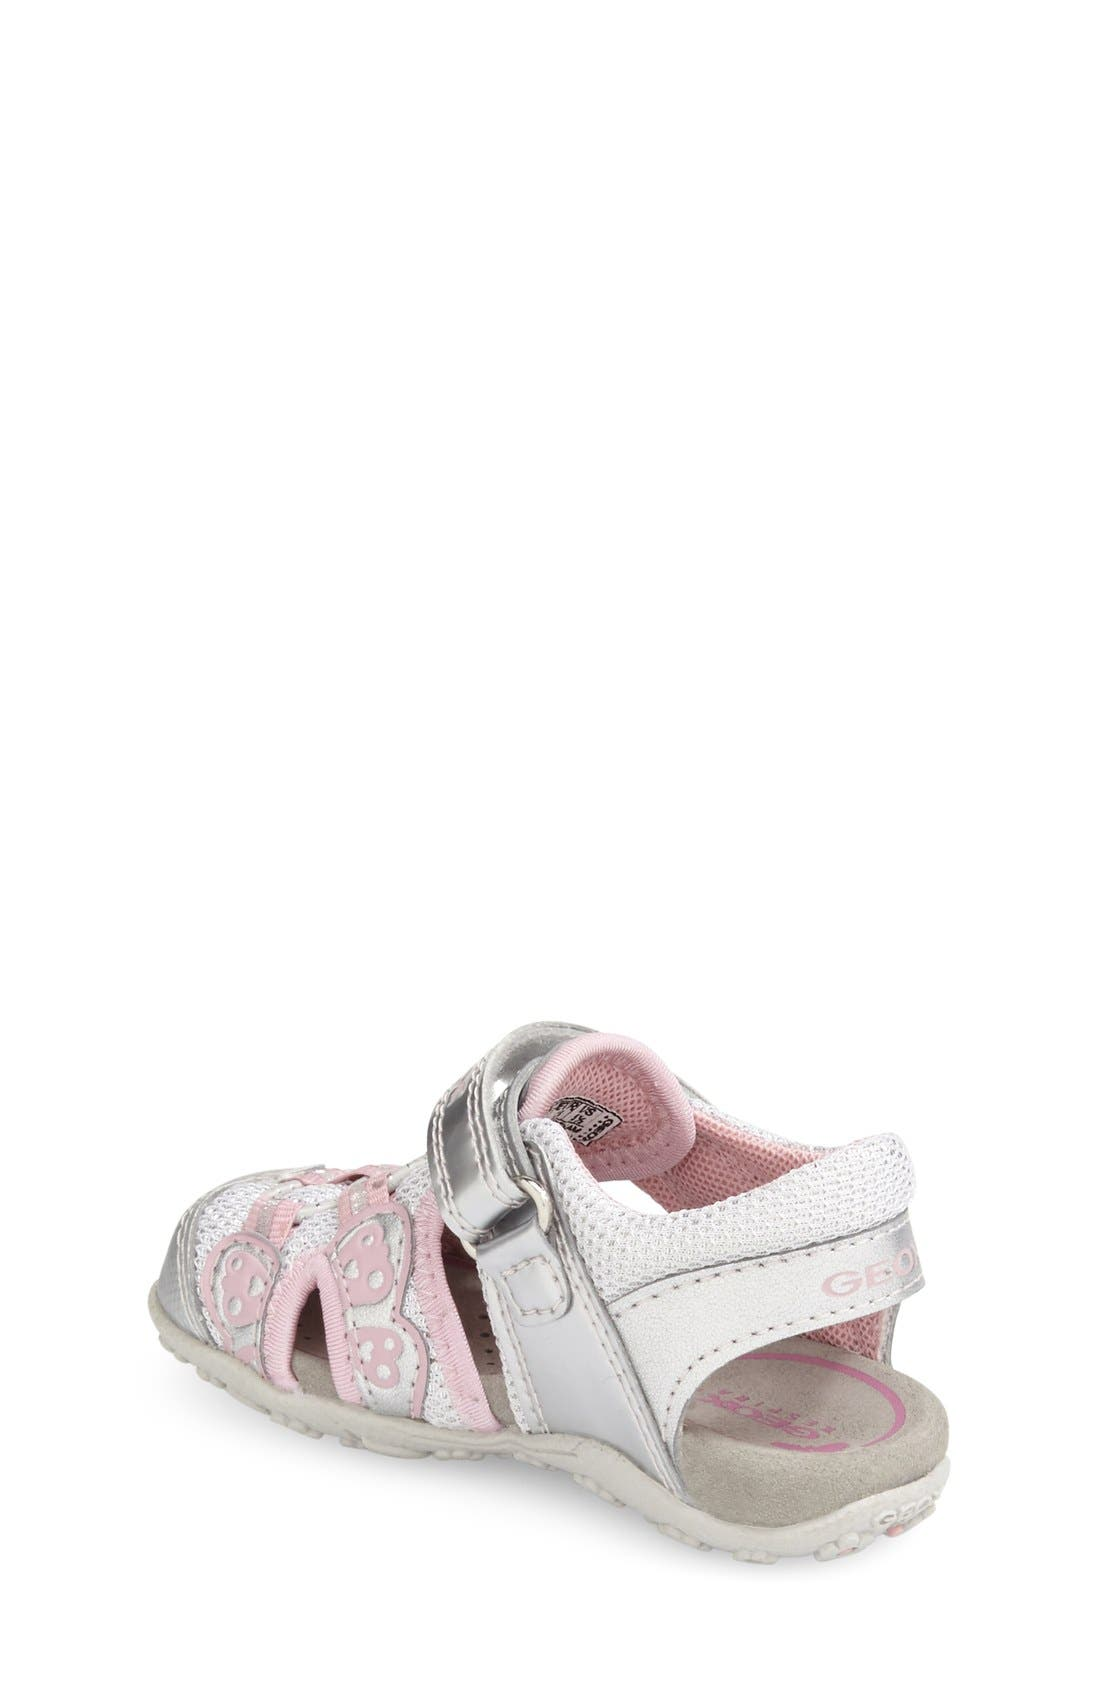 'Jr Roxanne 38' Sandal,                             Alternate thumbnail 2, color,                             150